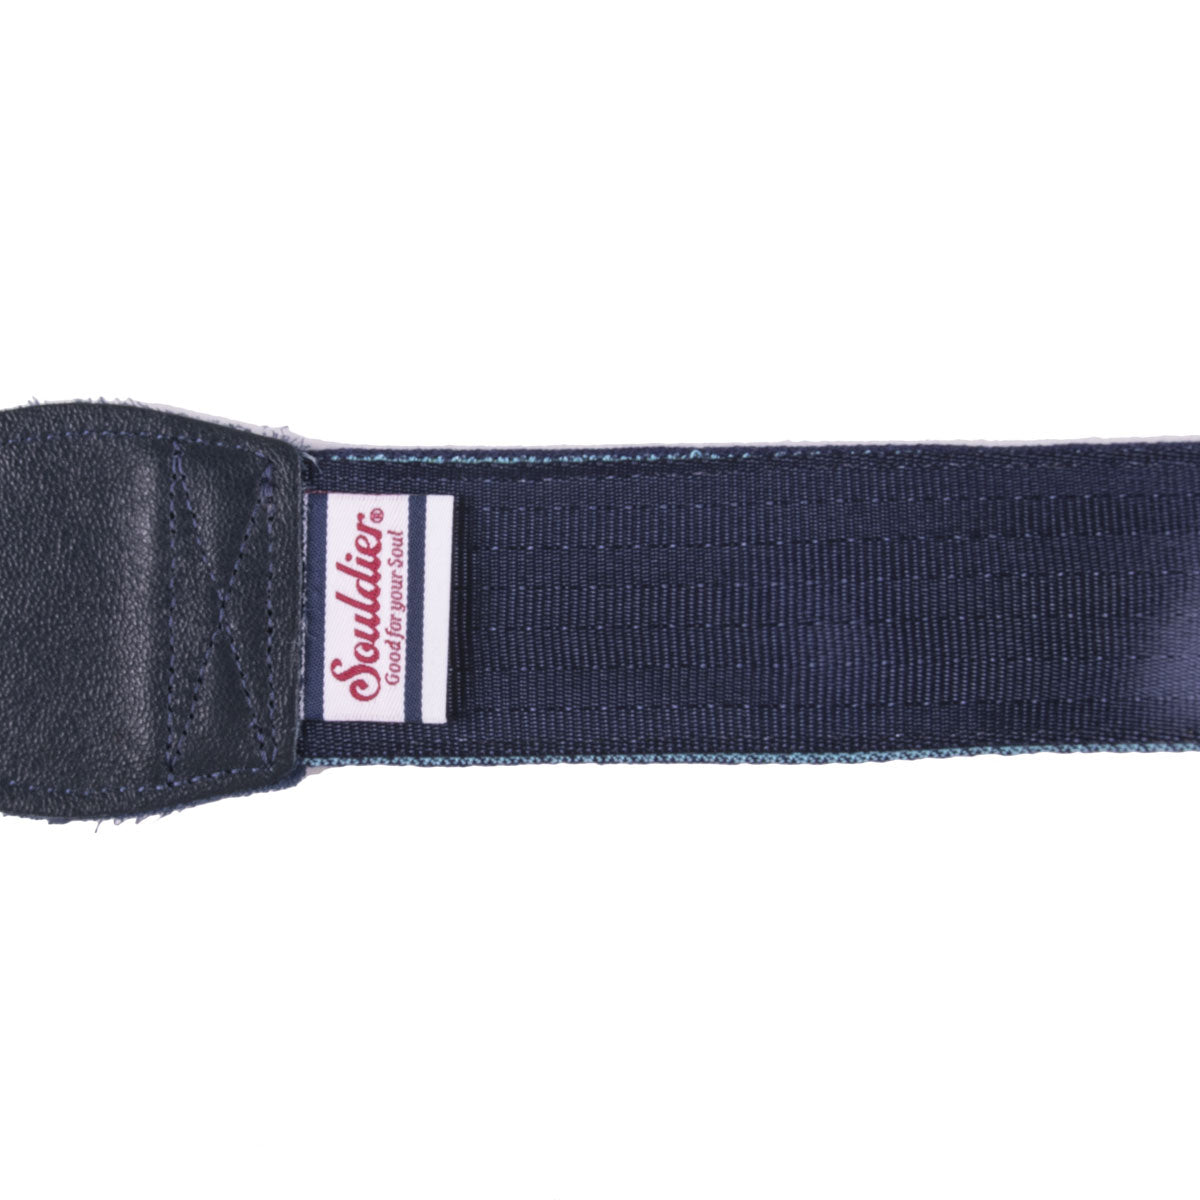 Souldier Owls Navy Strap | Lucky Fret Music Co.